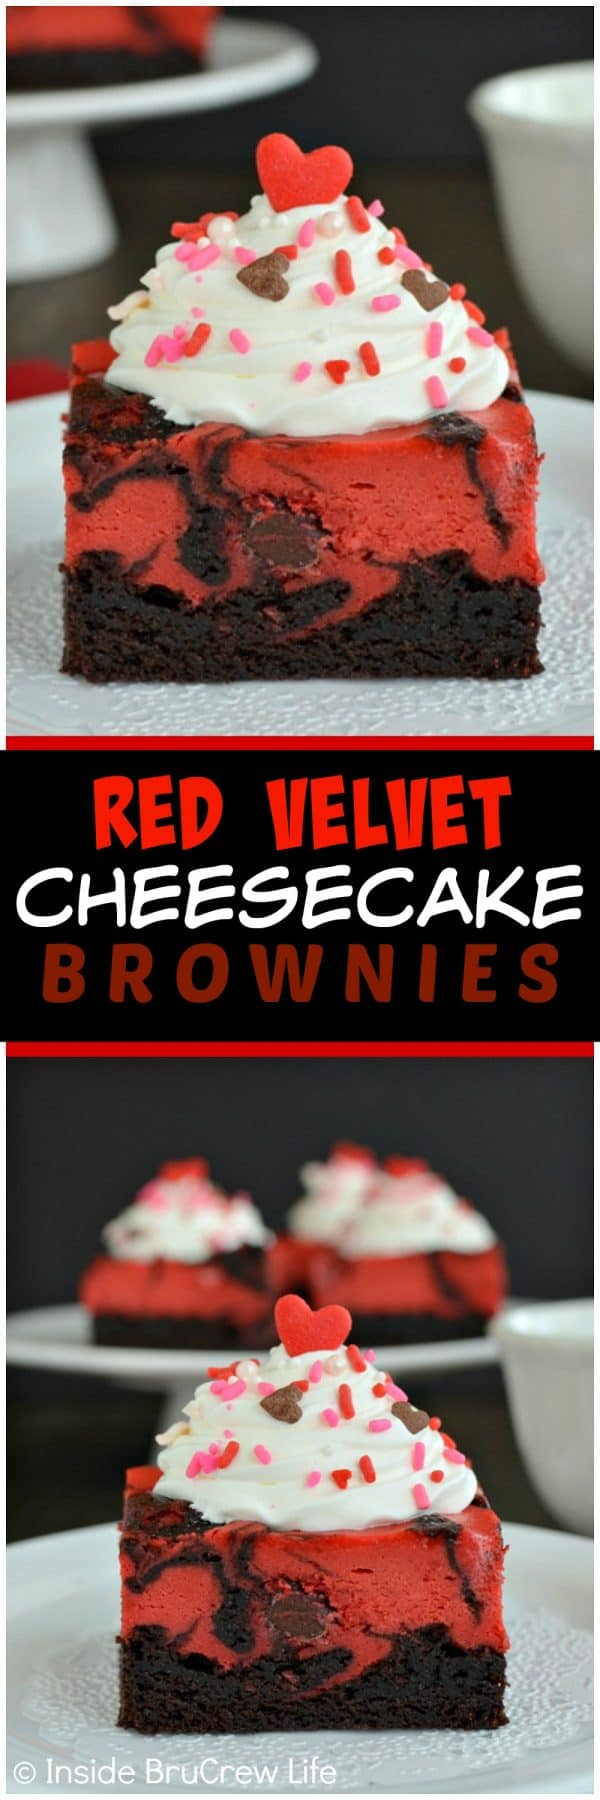 Red Velvet Cheesecake Brownies - swirls of fudge brownies and red velvet cheesecake makes a bright and fun dessert. Easy recipe to make for parties! #redvelvet #cheesecake #brownies #valentine #valentinesday #dessert